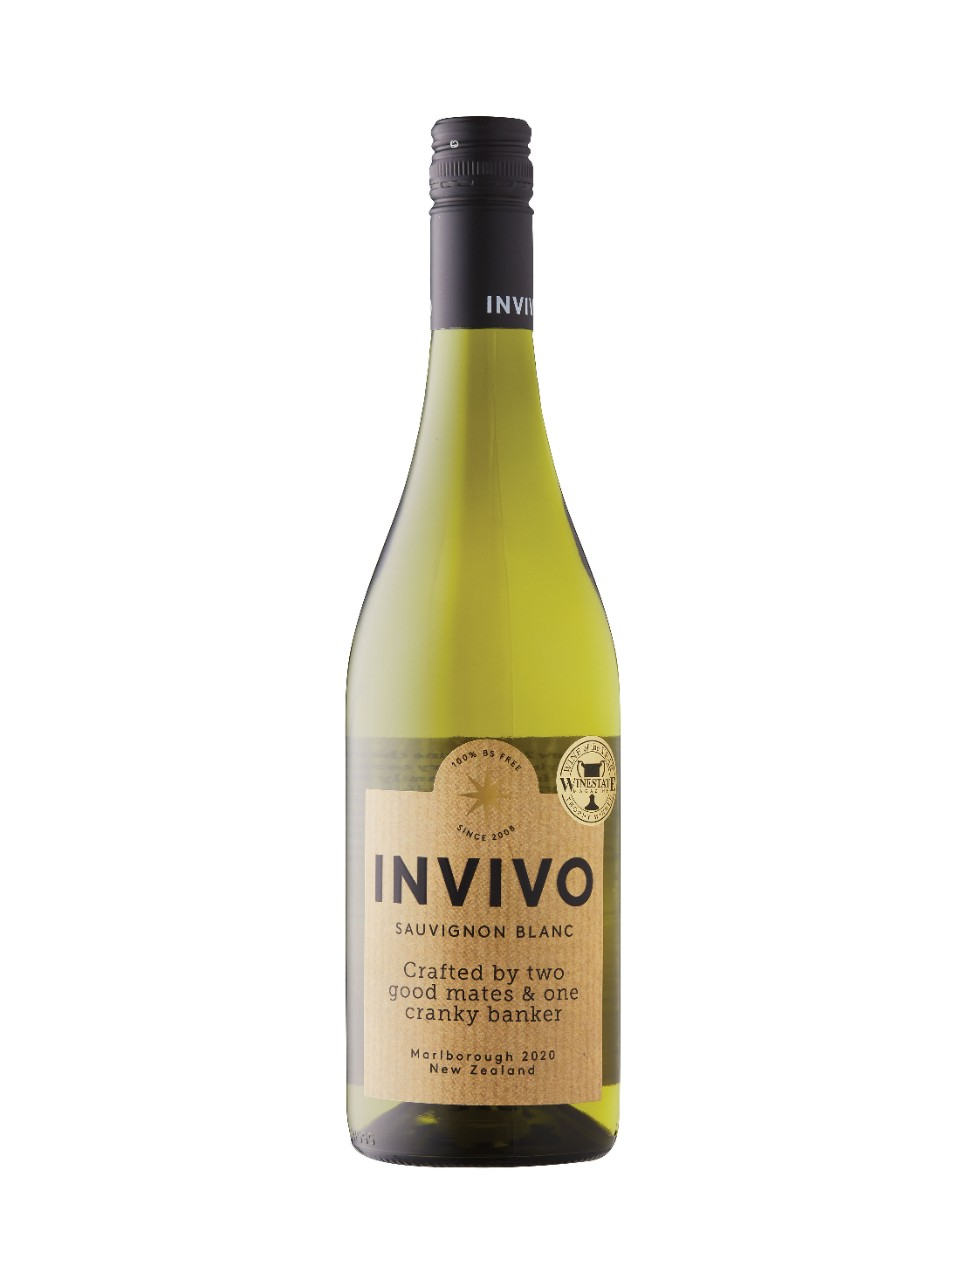 Invivo Sauvignon Blanc 2019 from LCBO